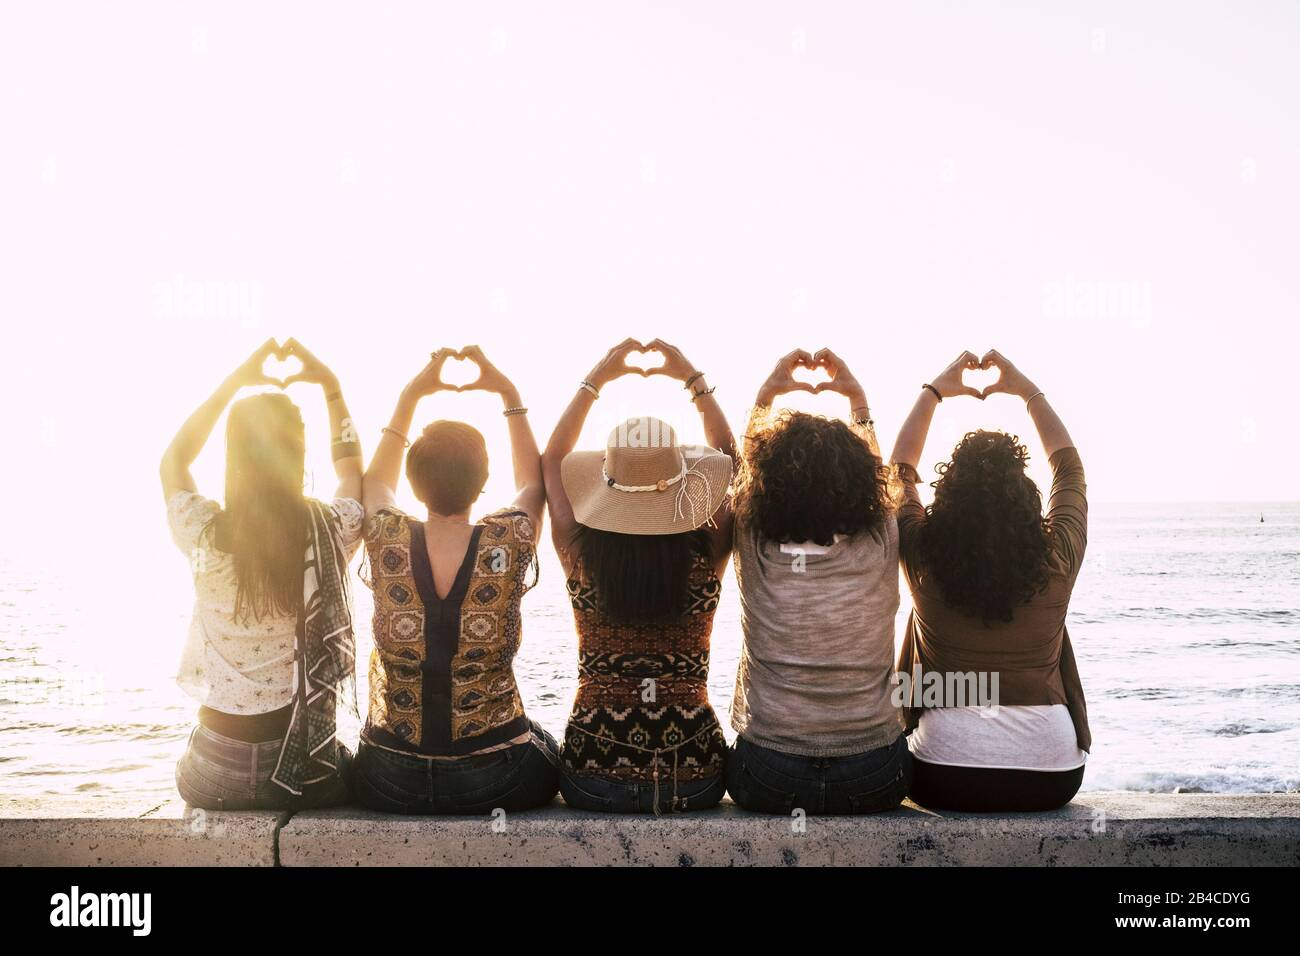 Group of happy people  outdoor friends women viewed from back doing love hearth sign with up hands - concept of relationship - sunset and sea in background Stock Photo